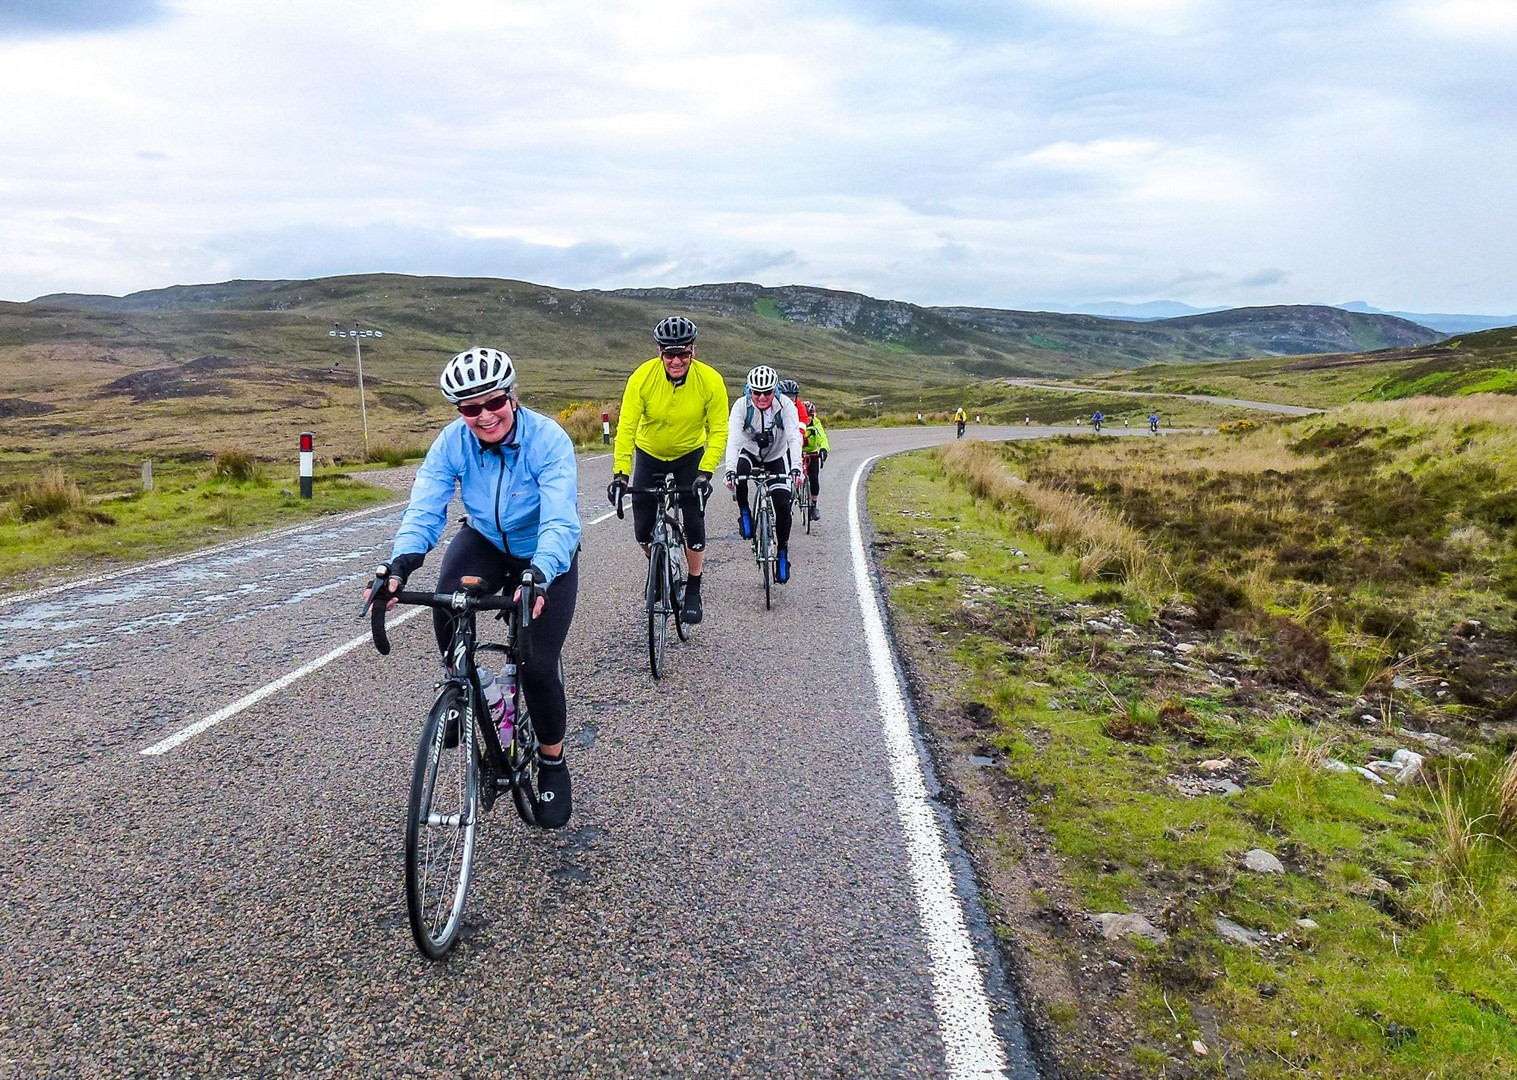 cycle-the-length-of-britain-with-saddle-skedaddle-guided-cycling-holiday.jpg - UK - Land's End to John O'Groats Explorer (22 days) - Guided Cycling Holiday - Leisure Cycling